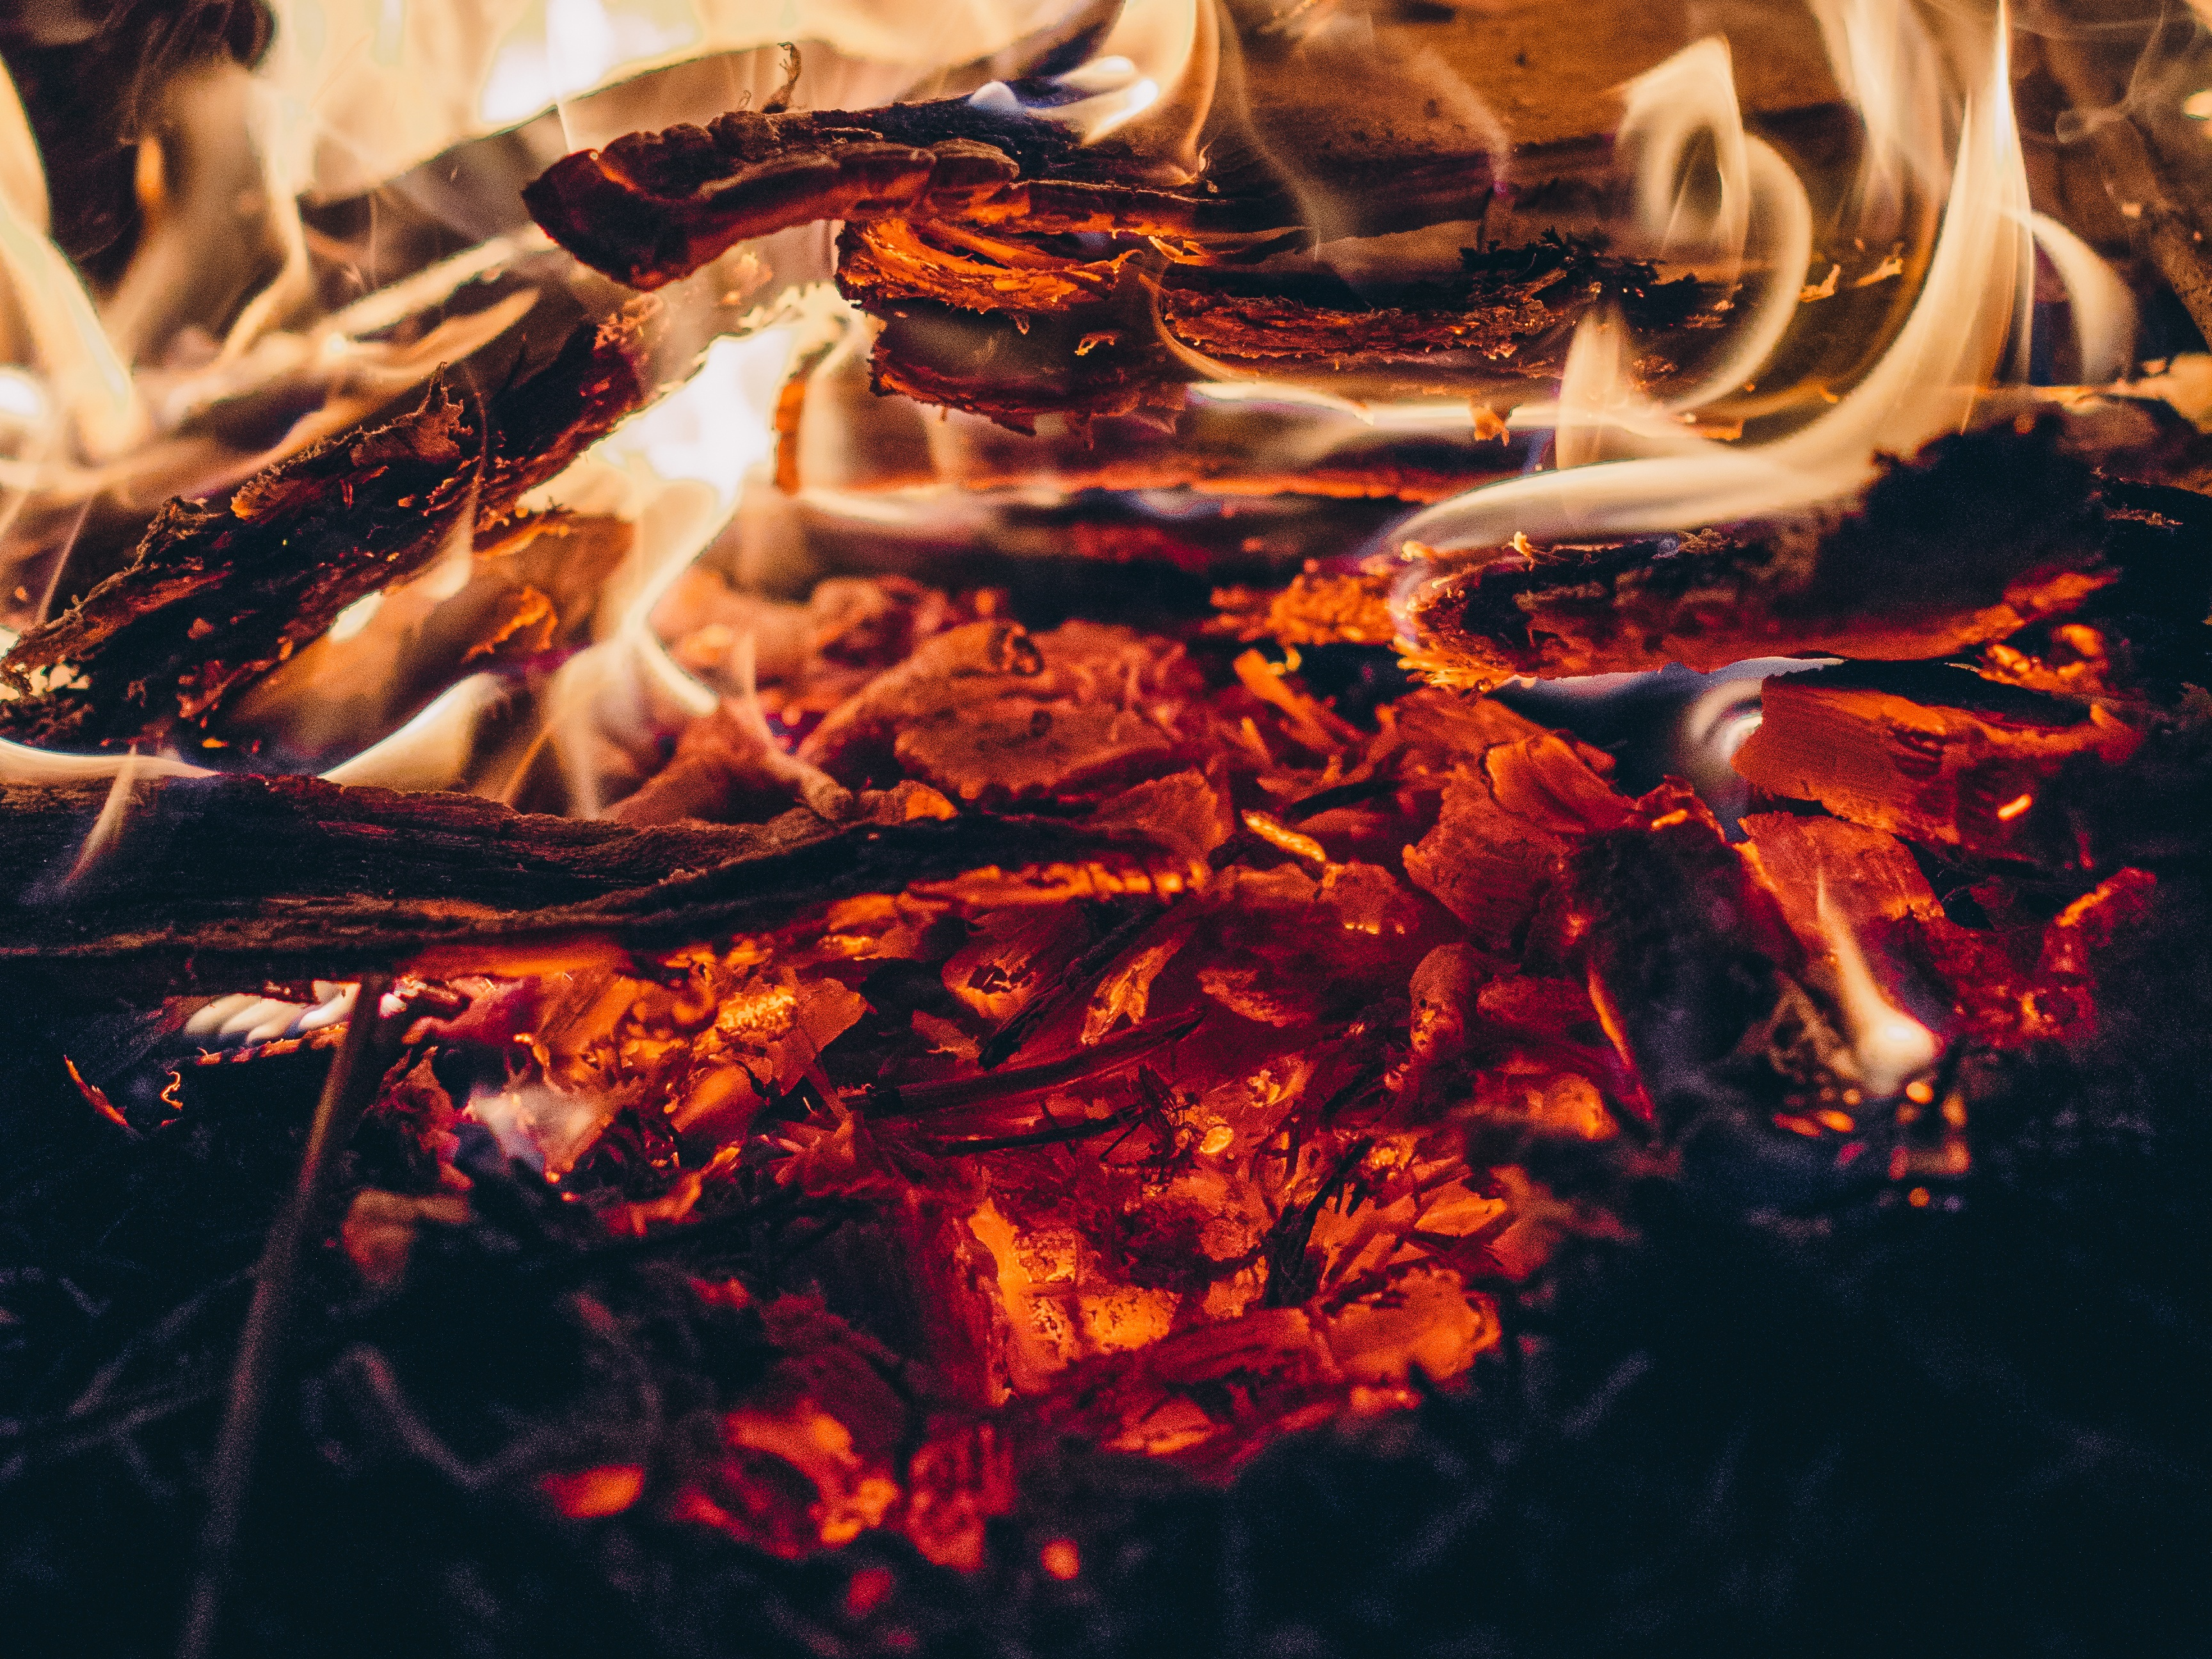 152179 Screensavers and Wallpapers Bonfire for phone. Download Fire, Bonfire, Coals, Miscellanea, Miscellaneous pictures for free